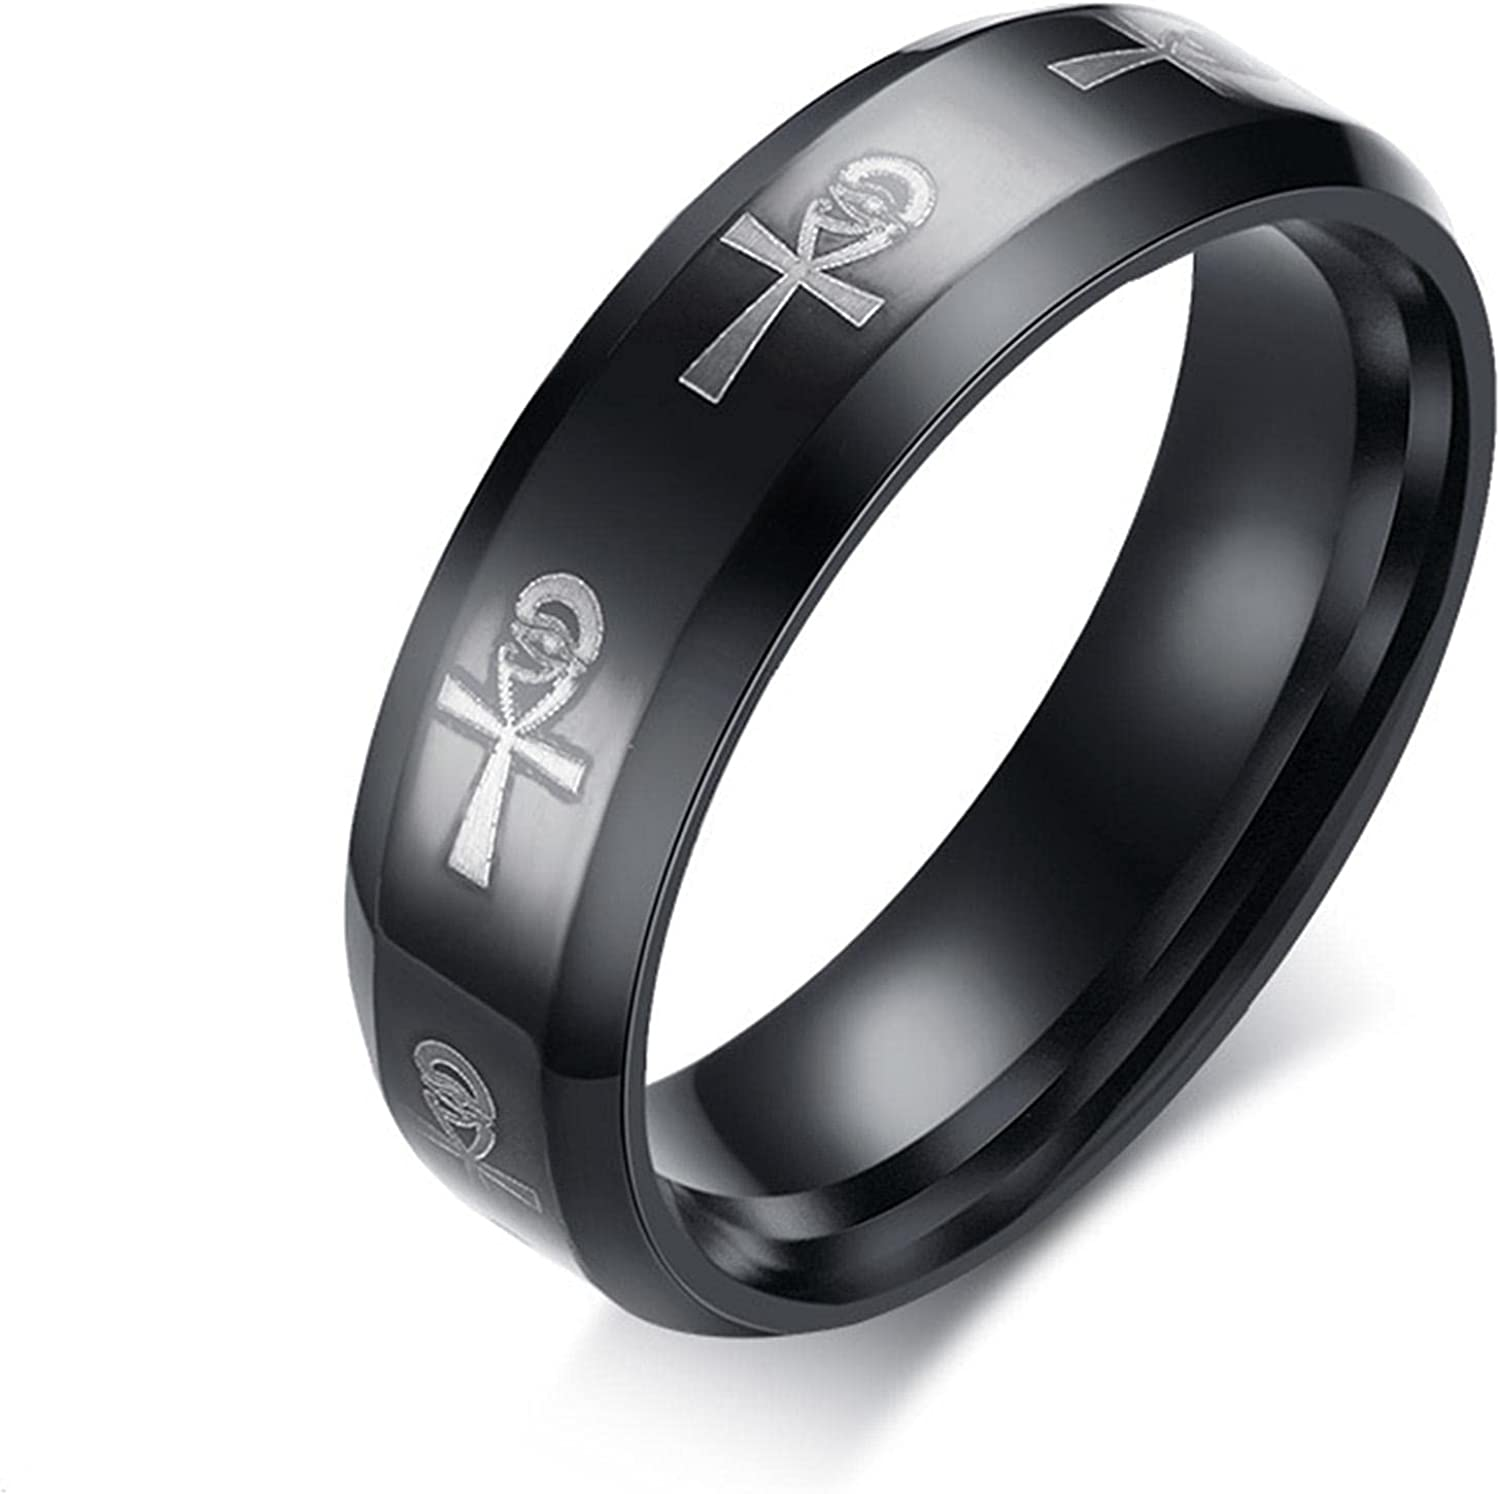 Men's Challenge the lowest price of Japan ☆ Ankh Ring Egyptian Cross with Eye Sta Religious Band Horus 55% OFF